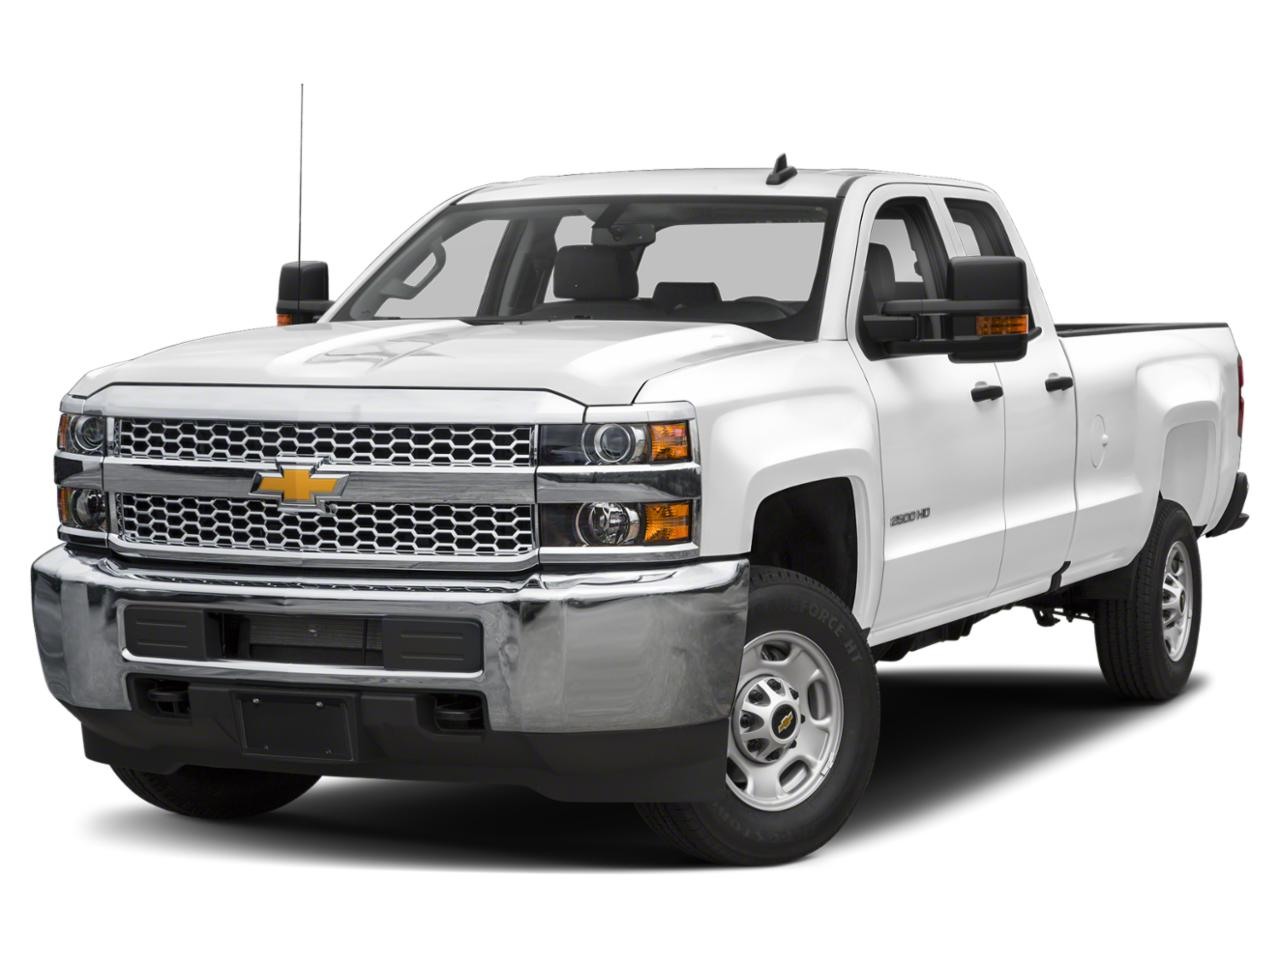 2019 Chevrolet Silverado 2500HD Vehicle Photo in Colma, CA 94014